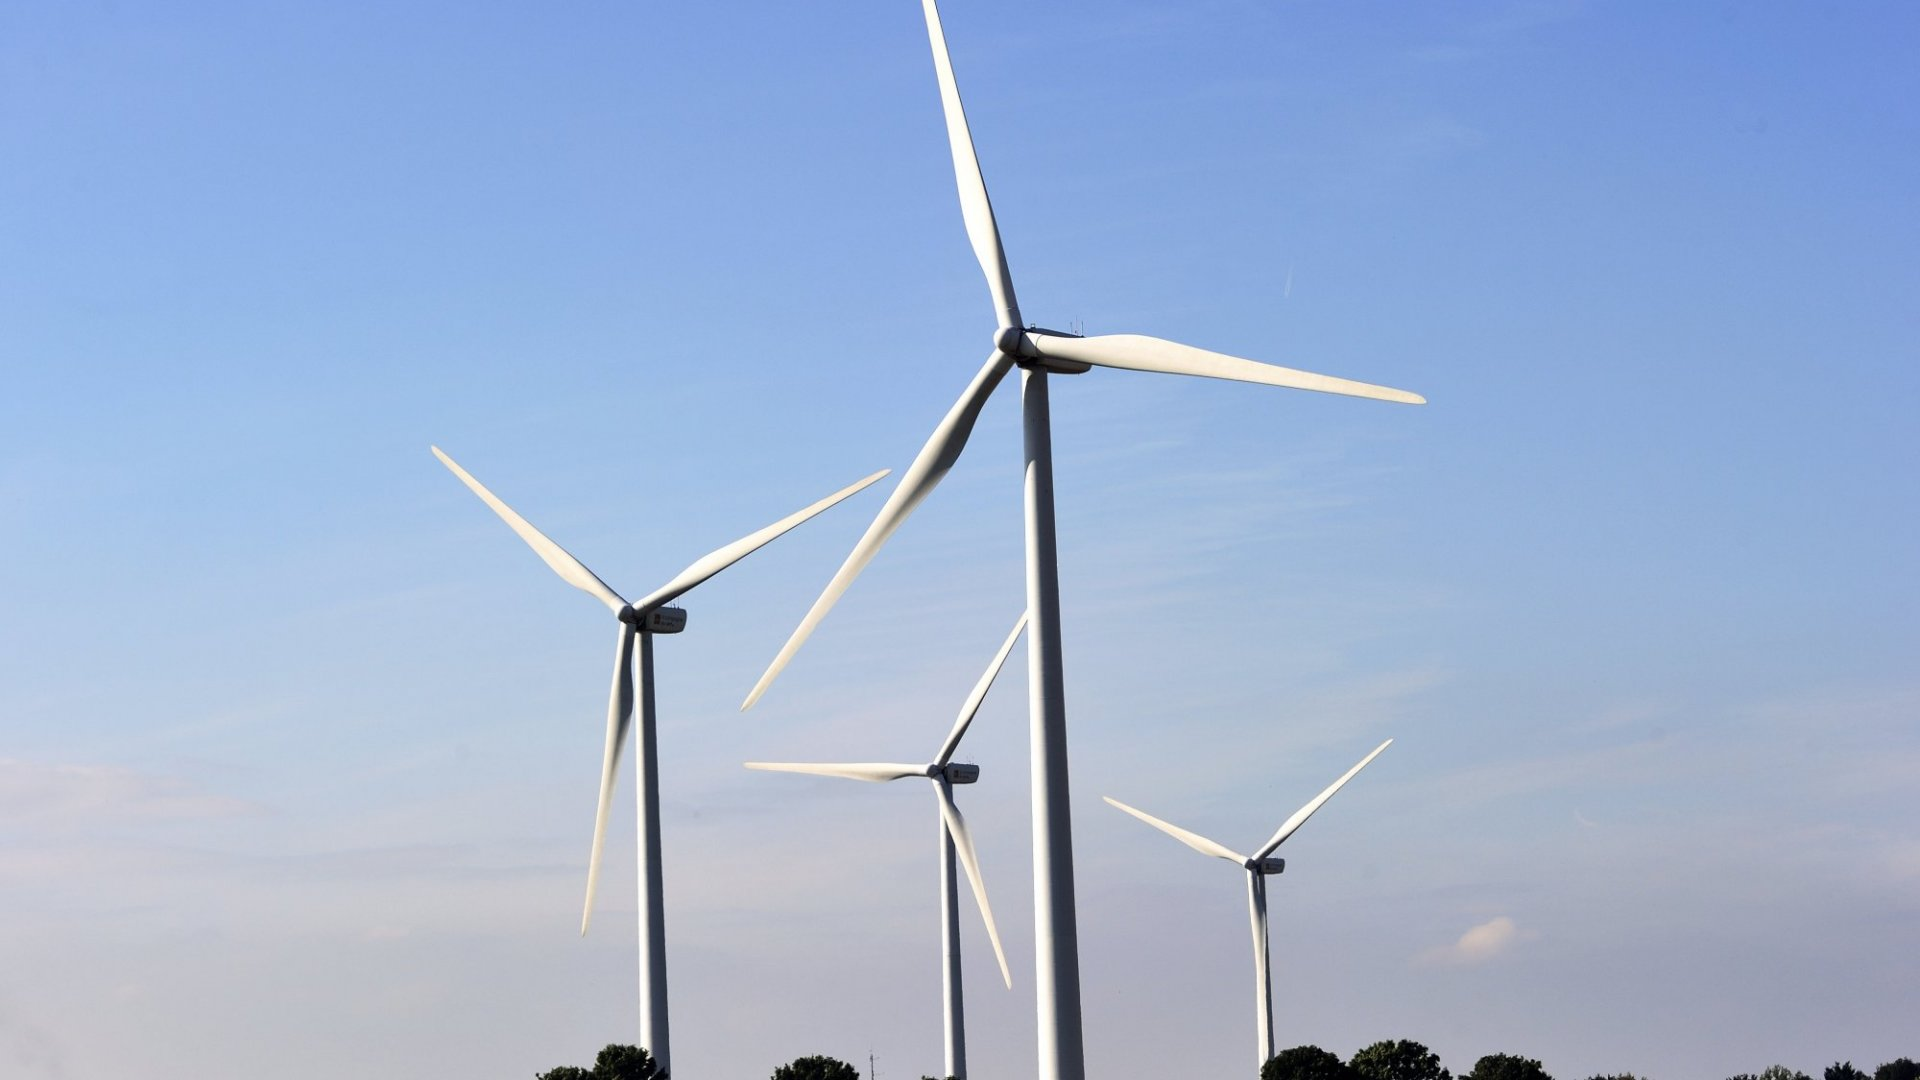 Amazon Web Services to Power Data Centers With Wind Energy